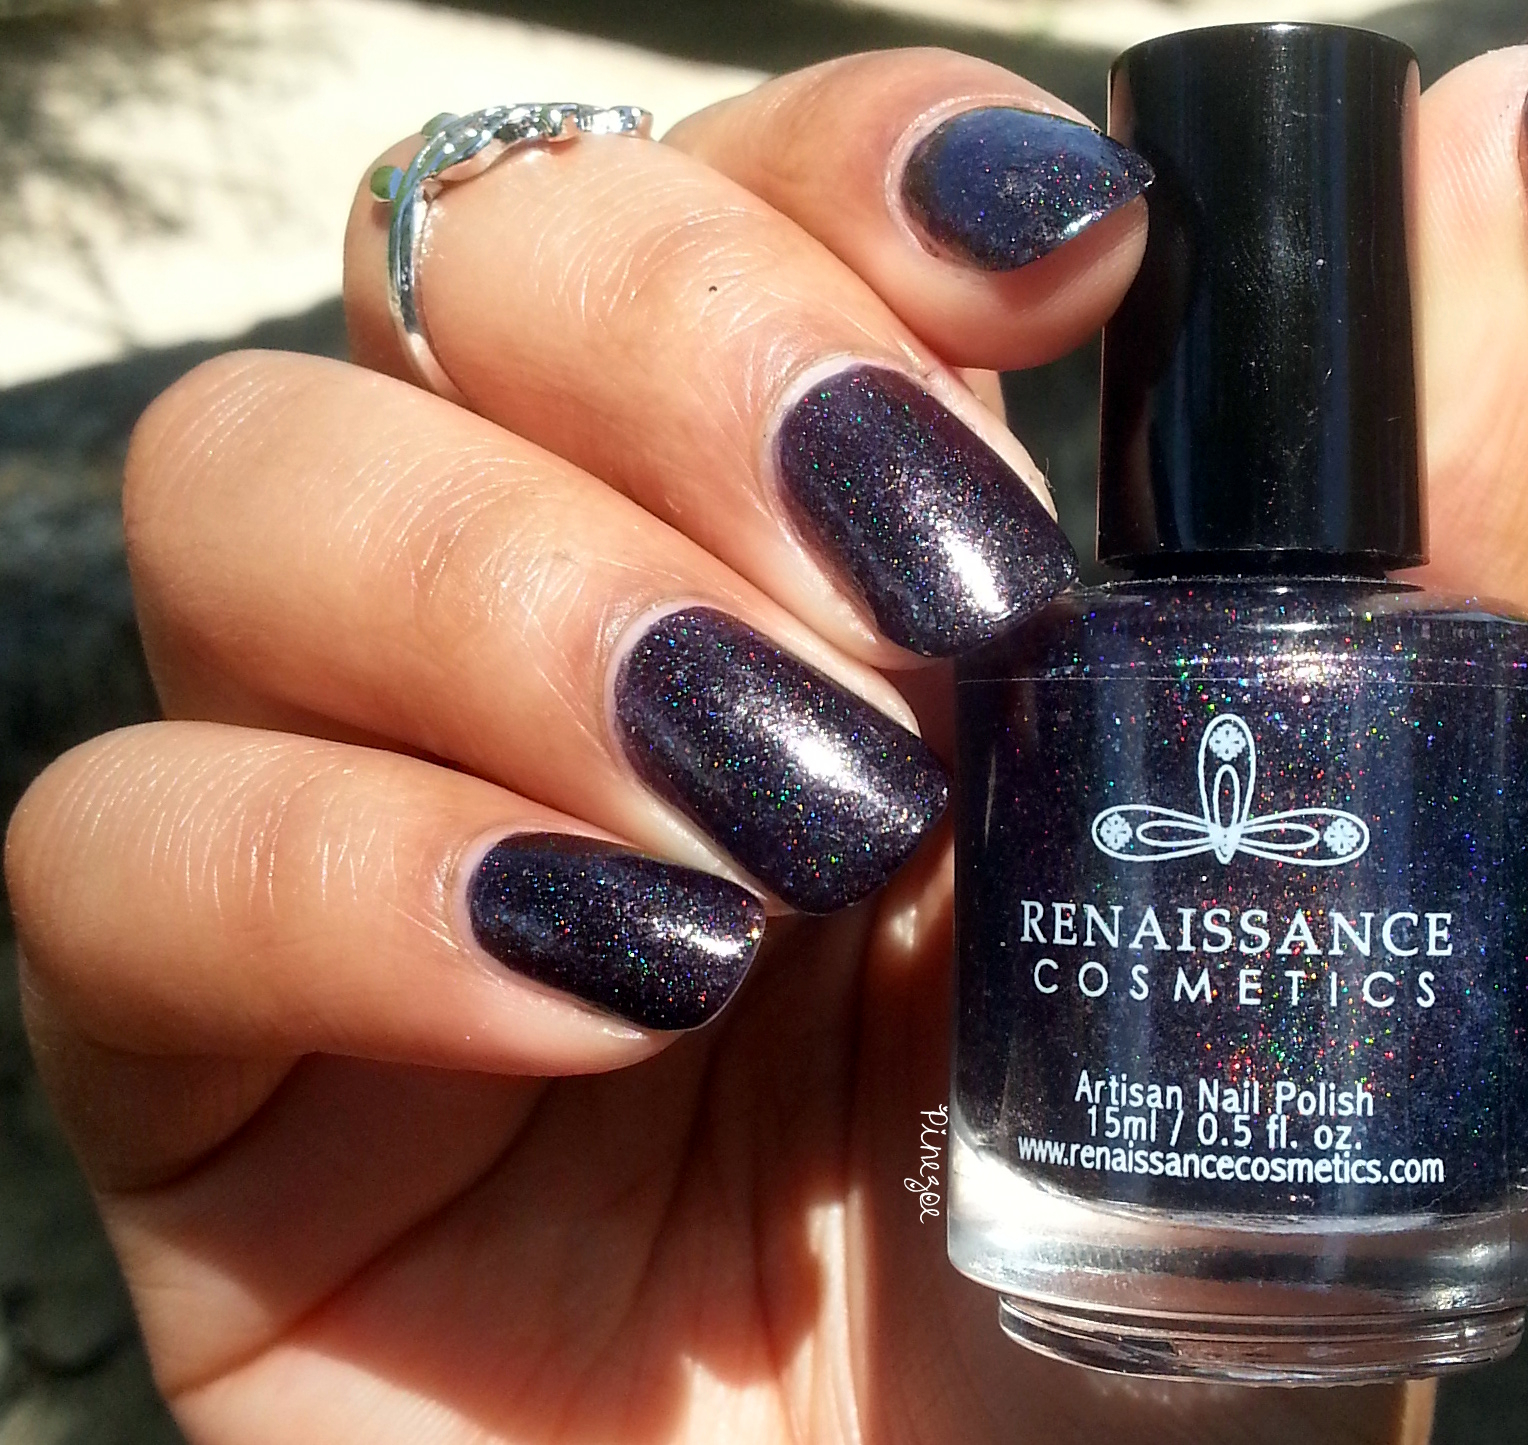 Renaissance Cosmetics - Out of the Darkness